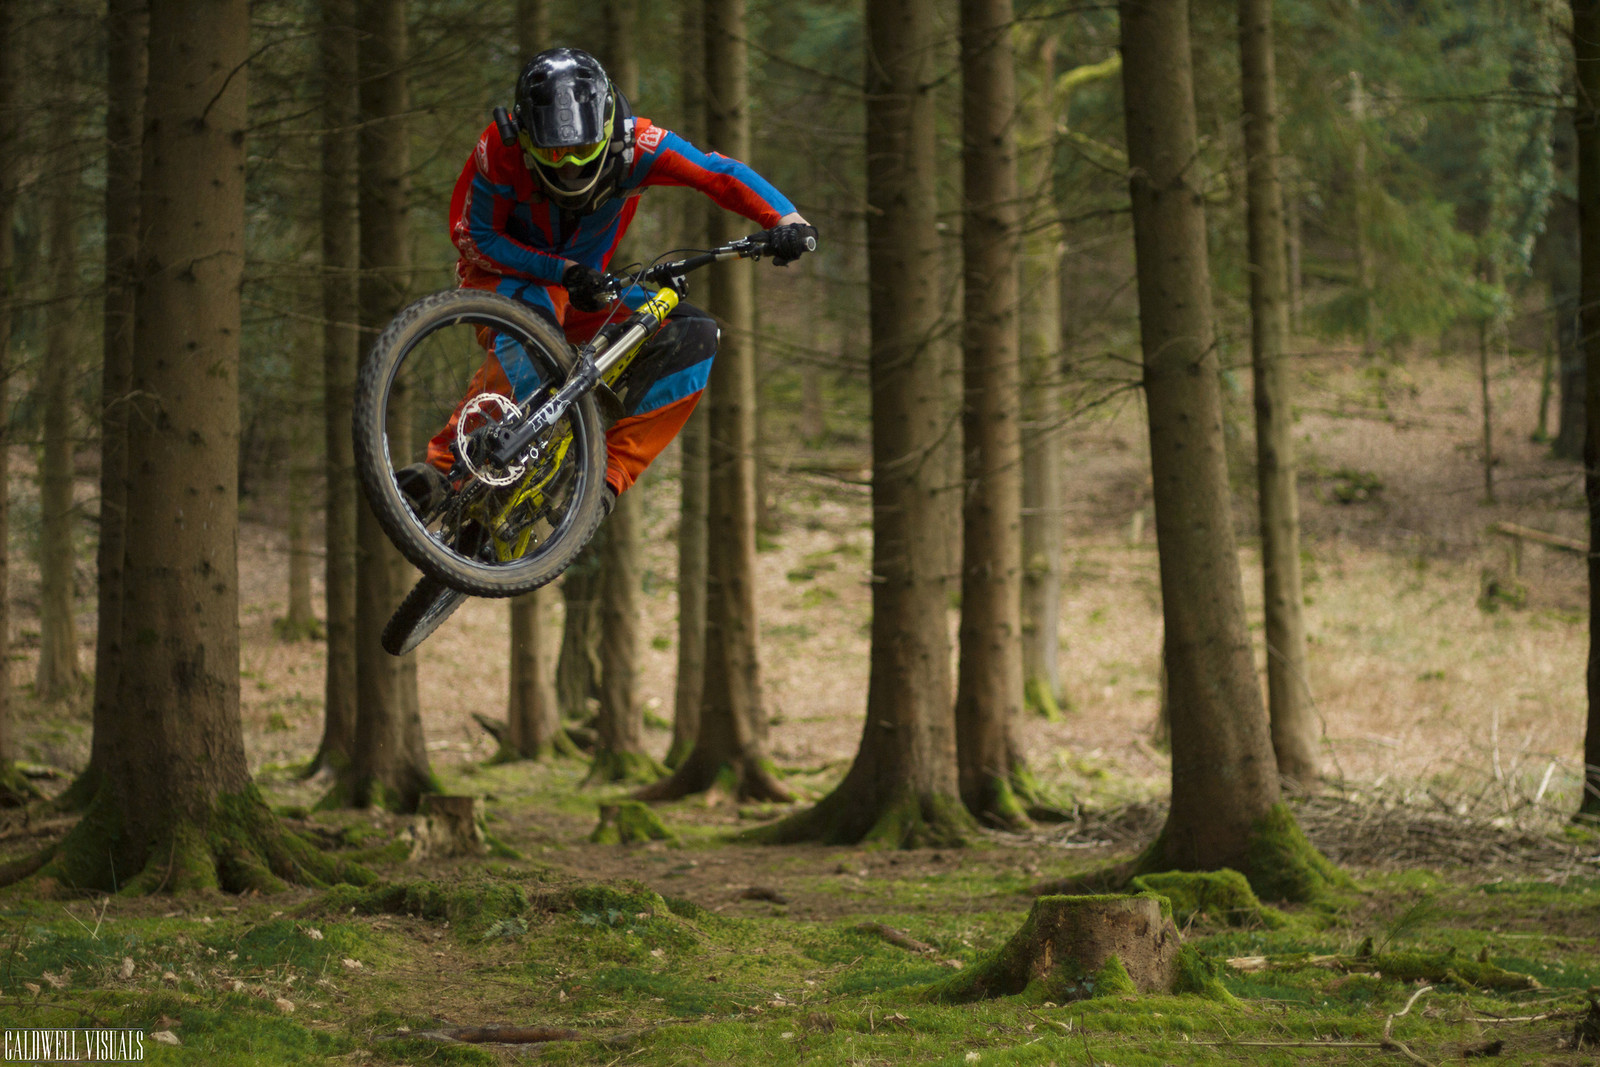 Hopping through the forest - CaldwellVisuals - Mountain Biking Pictures - Vital MTB